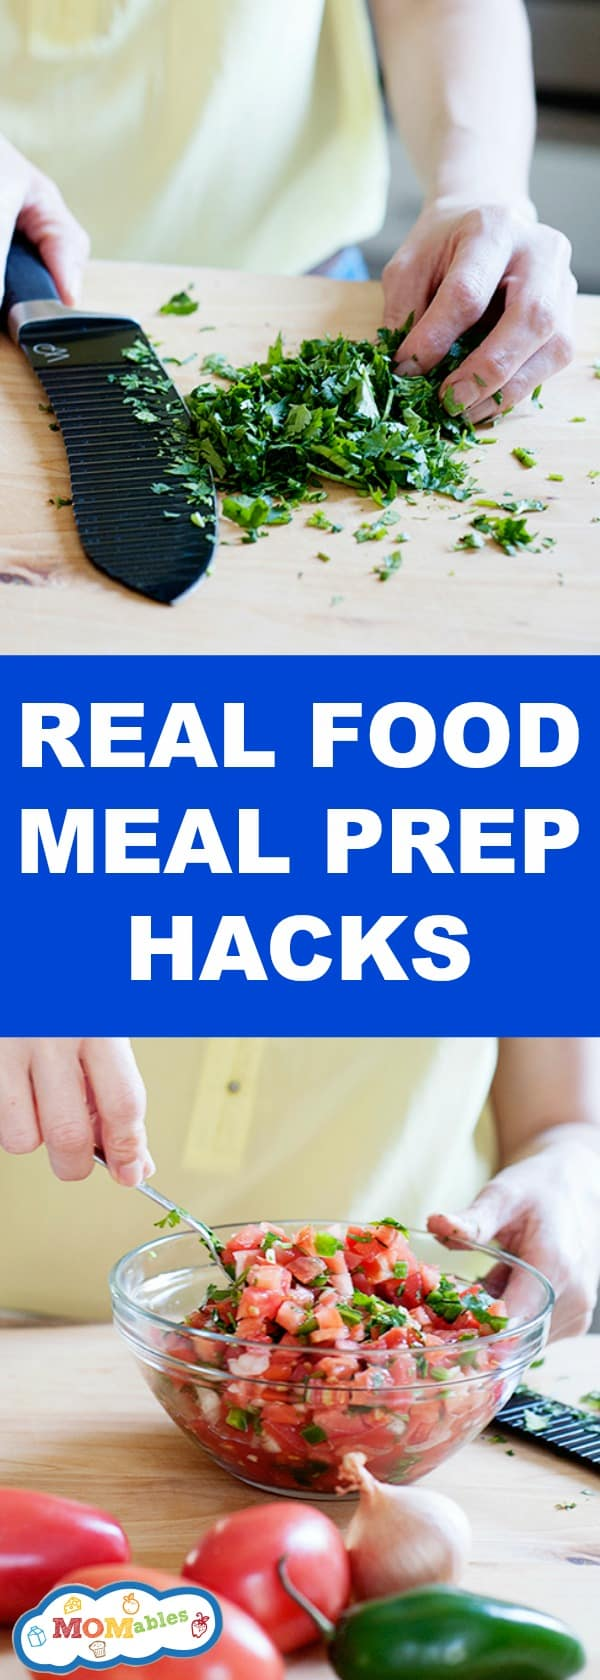 Meal Prep shortcuts to help you make real food meals faster